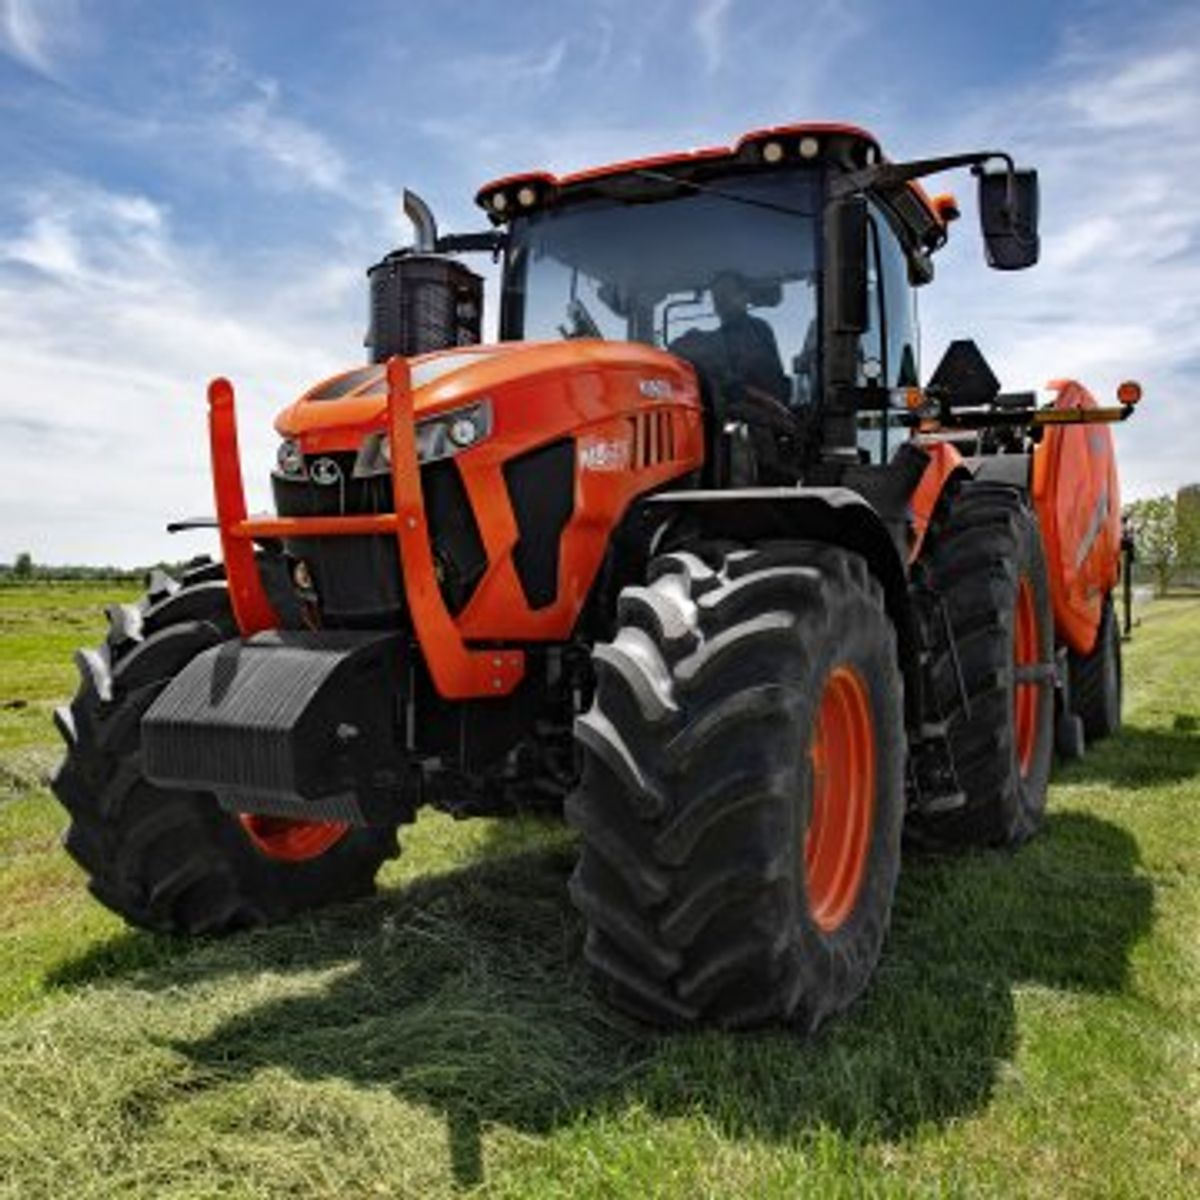 A Look at the New Kubota M8 Tractor